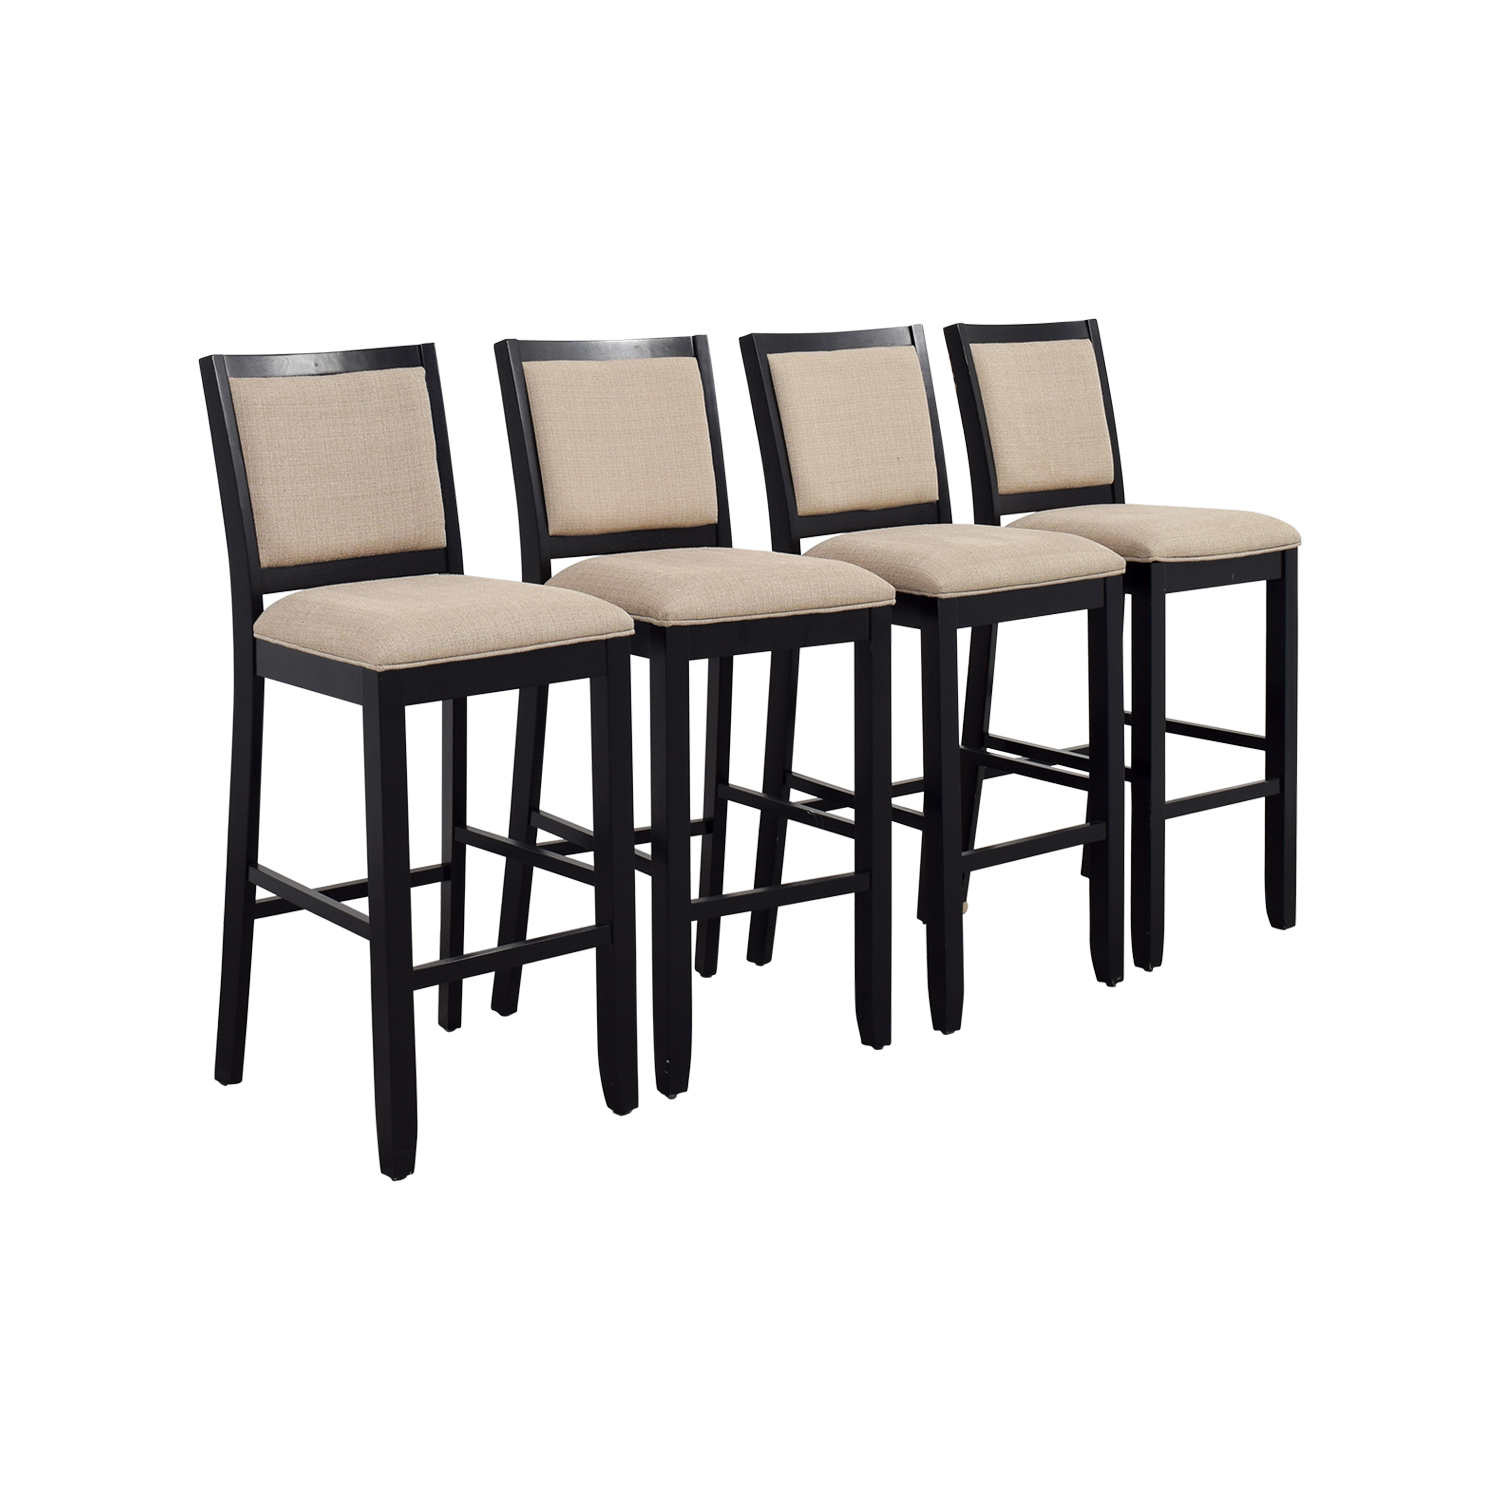 Off beige upholstered bar stools chairs